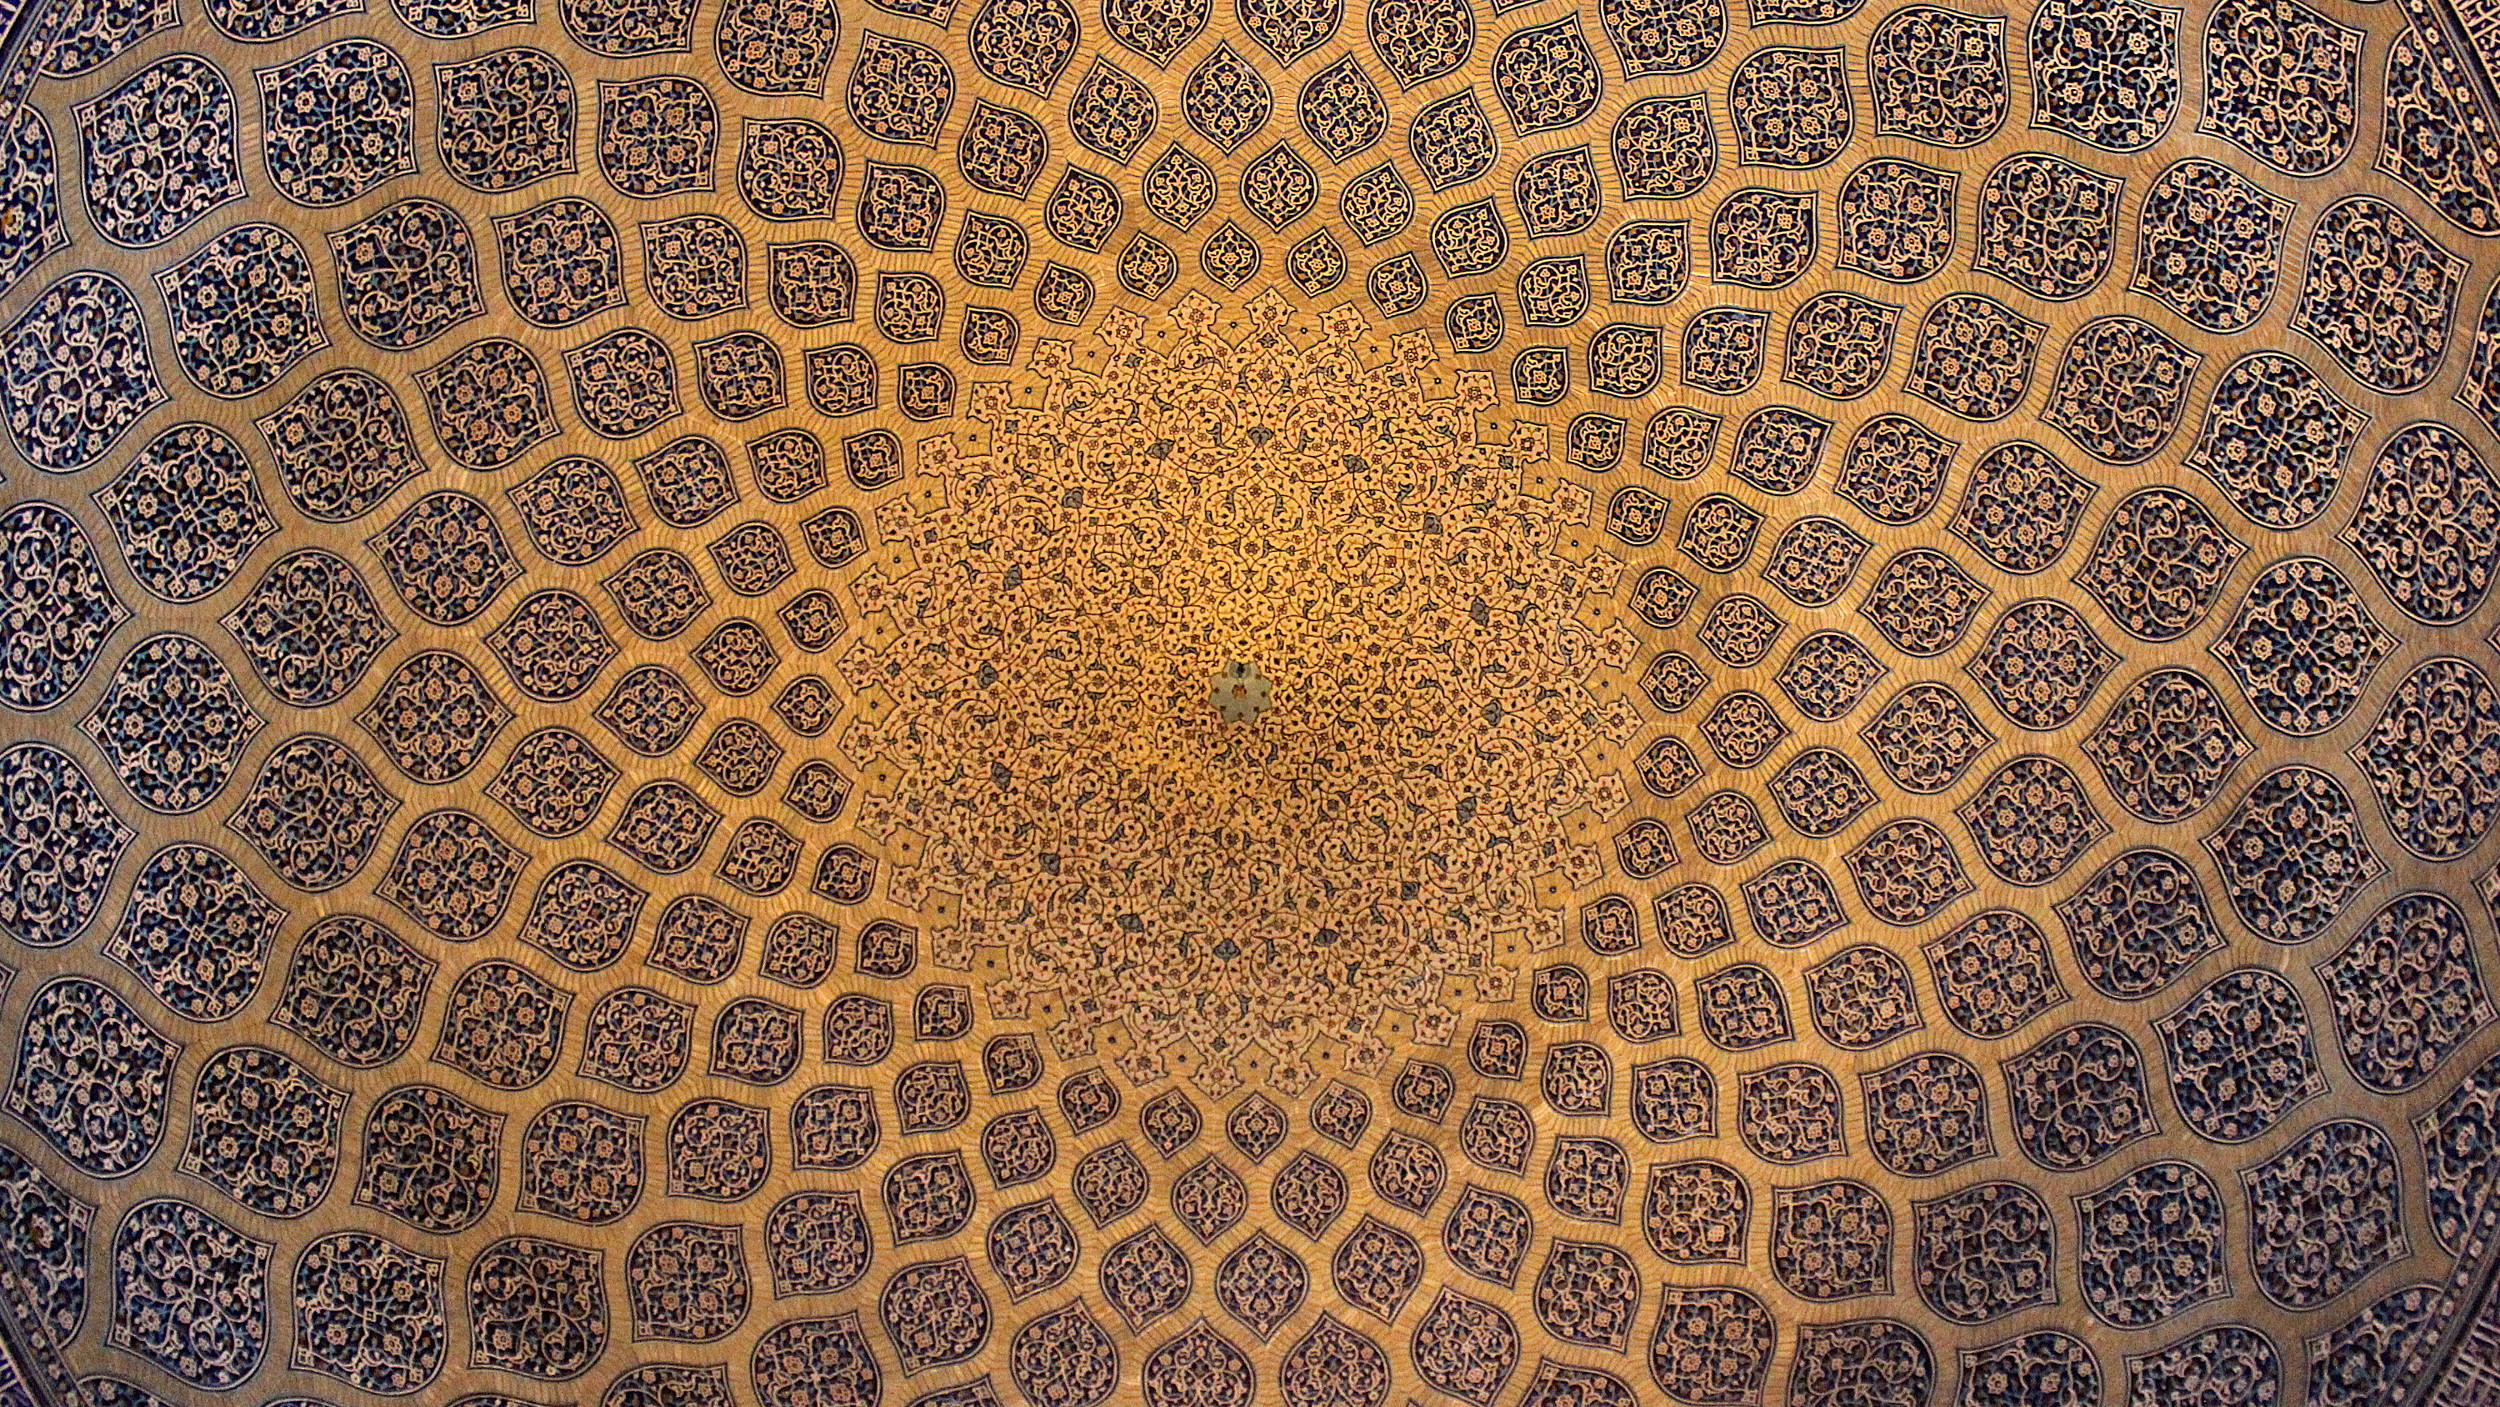 Doing a guided tour of Iran. The ceiling of Sheikh Lotfollah Mosque in Esfahan.